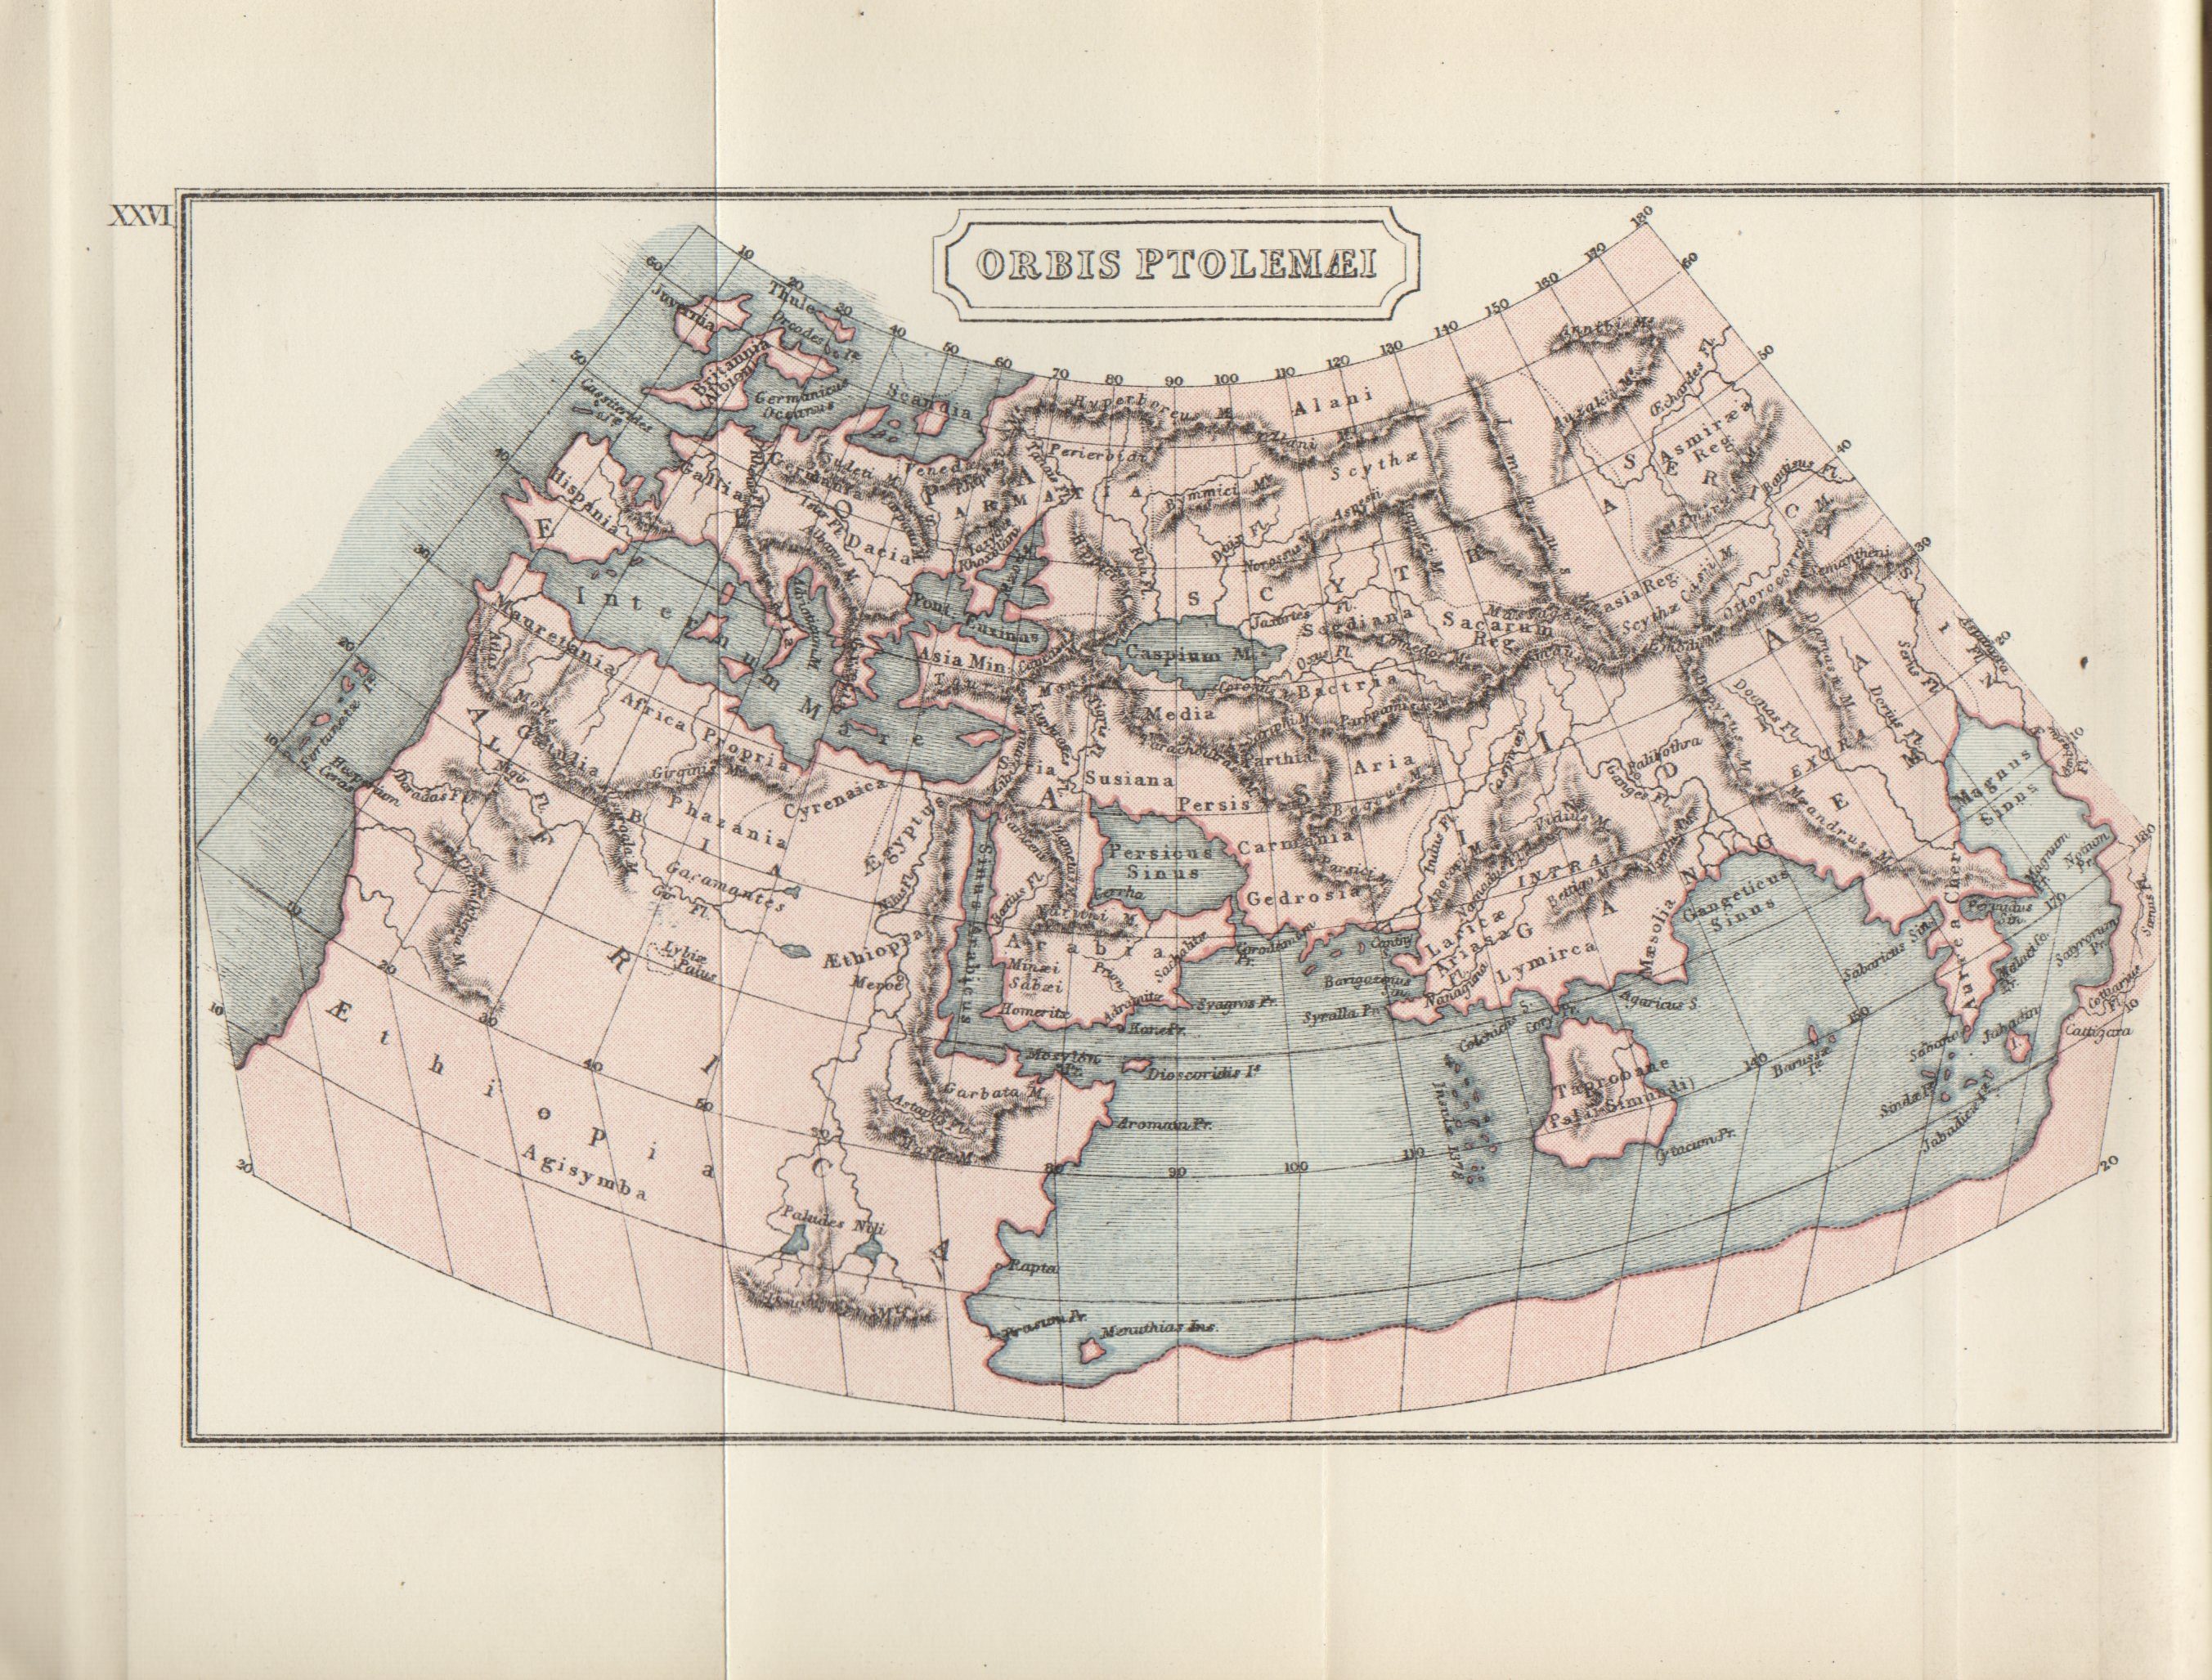 Map of the ptolemaic world illustration ancient history encyclopedia a map showing the known world at the time of the ptolemaic empire ca 300 bc gumiabroncs Gallery